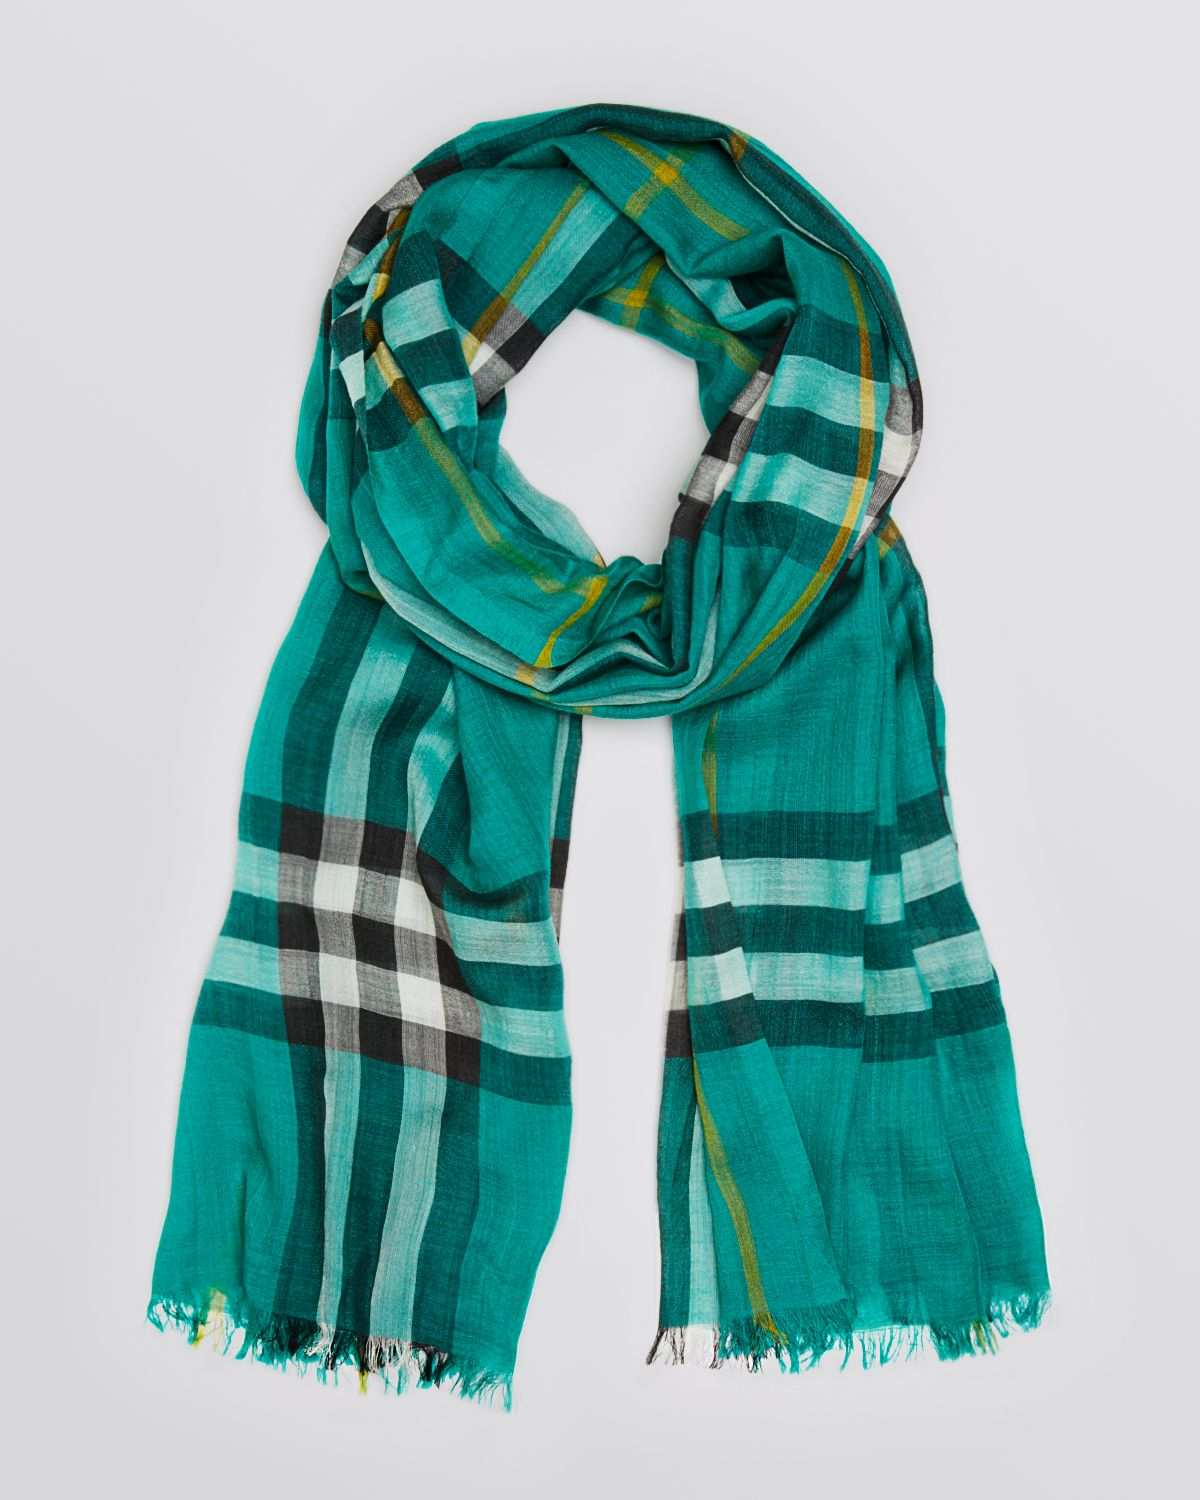 Burberry Giant Check Woolsilk Gauze Scarf in Green | Lyst